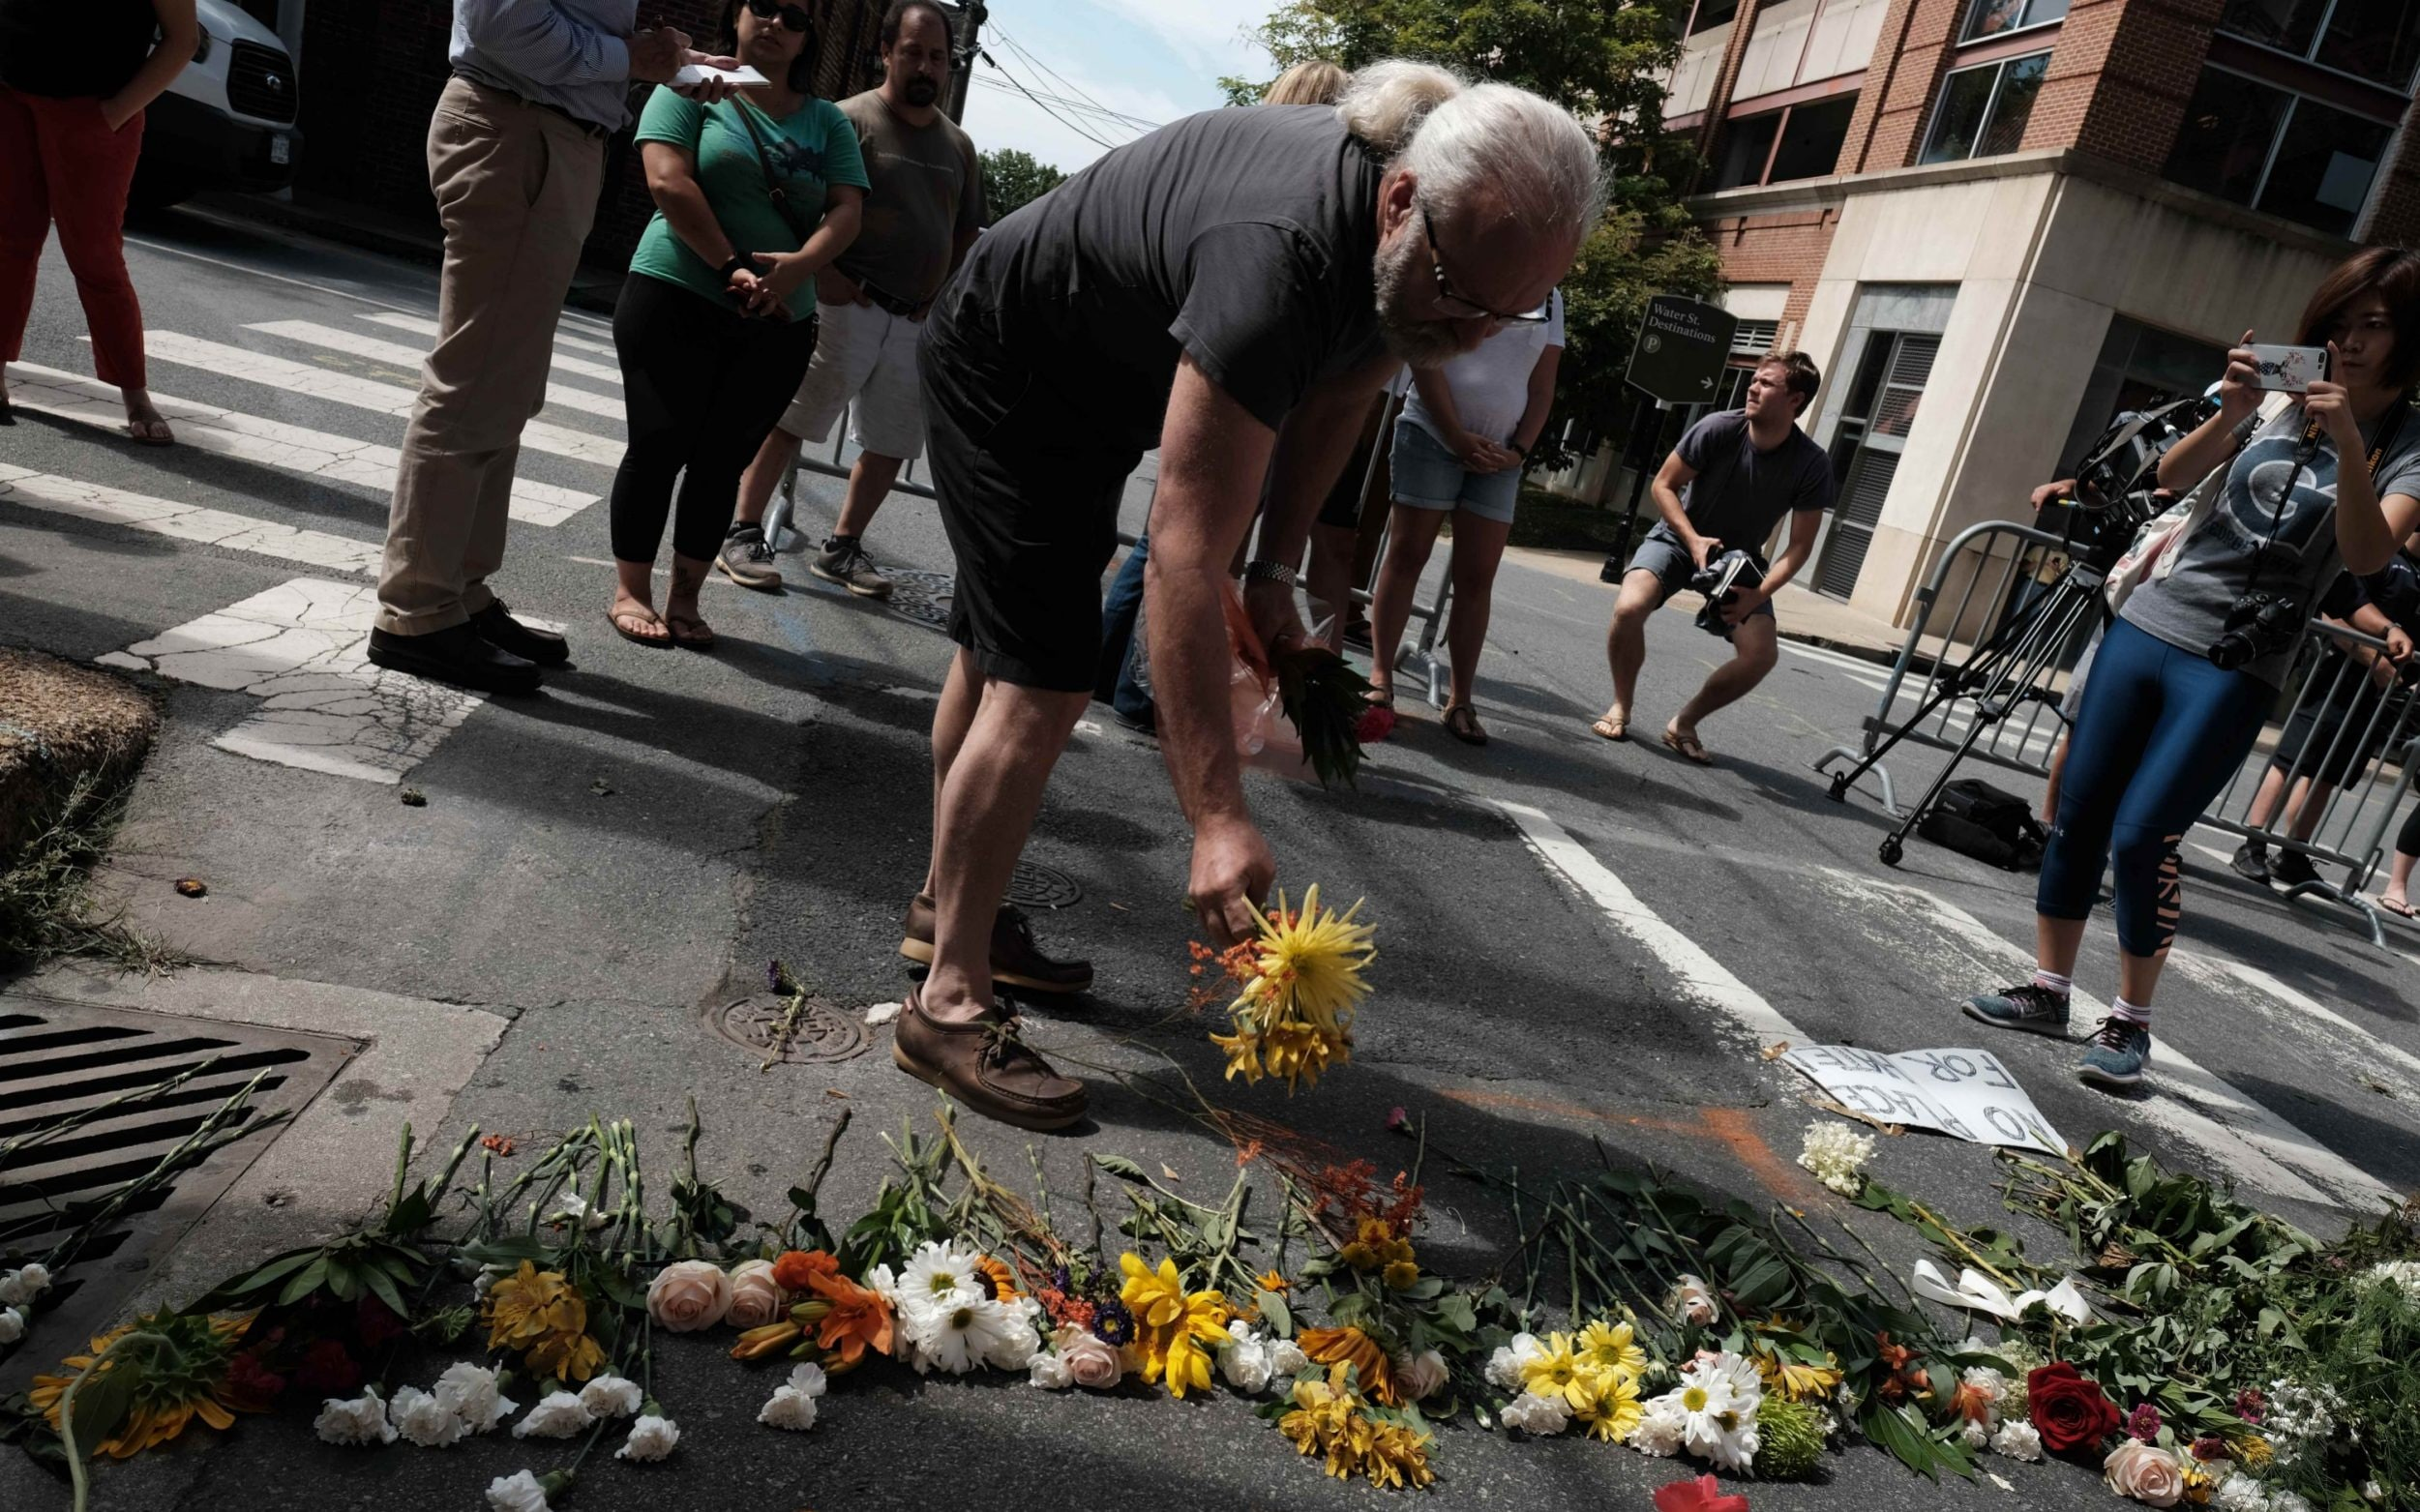 A mourner lays flowers at a makeshift memorial at the scene of where a car plowed into counter-protesters in Charlottesville